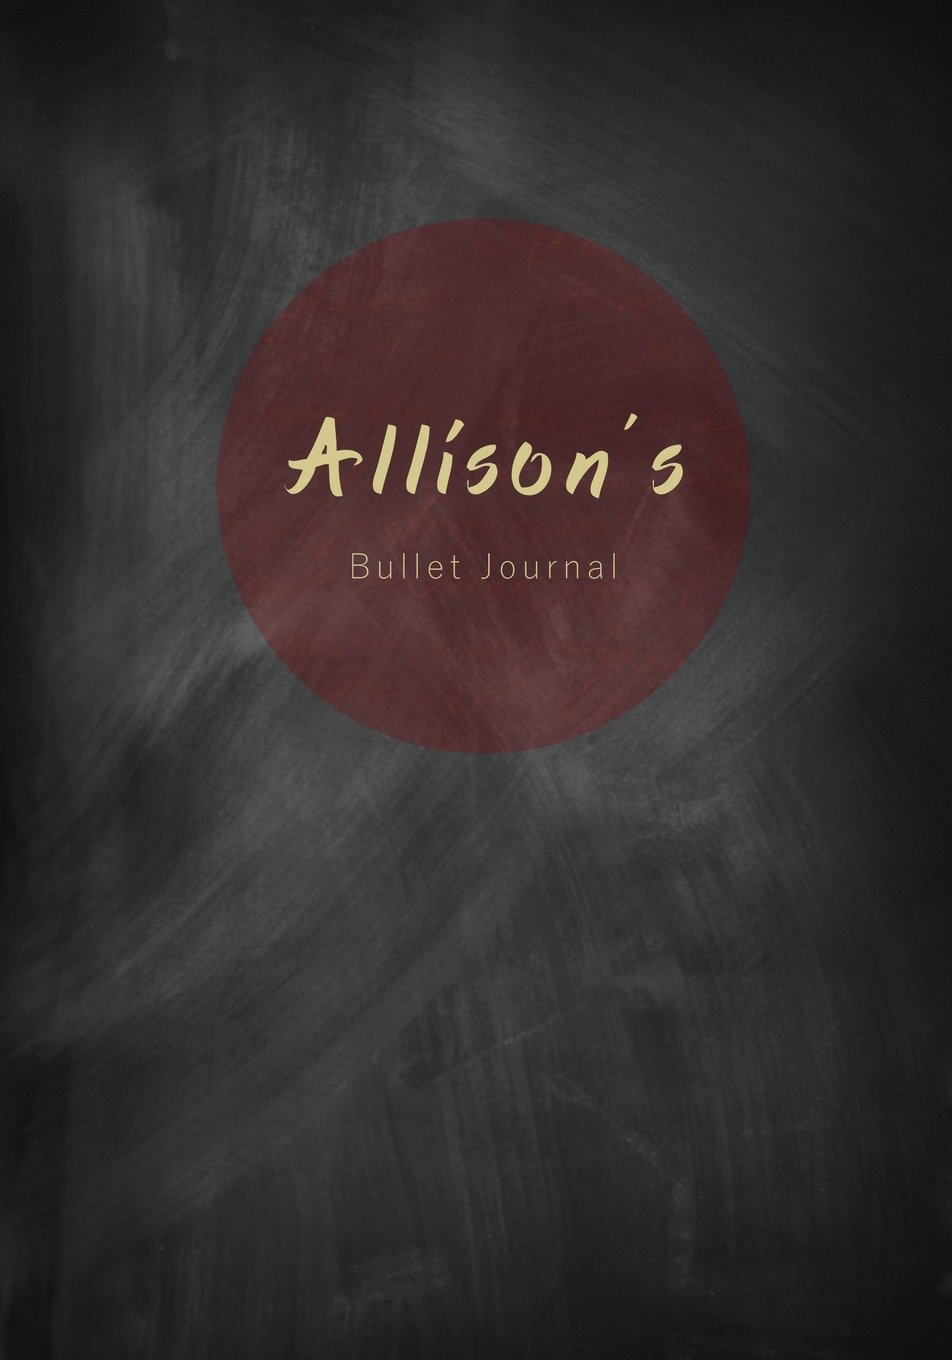 Download Allison's Bullet Journal: A Personalized Name Dot Grid Notebook/Planner/Organizer (7x10 Inches) (Cute Notebooks, Journals and Other Unique Birthday ... Best Friend and Other Women and Teen Girls)) ebook